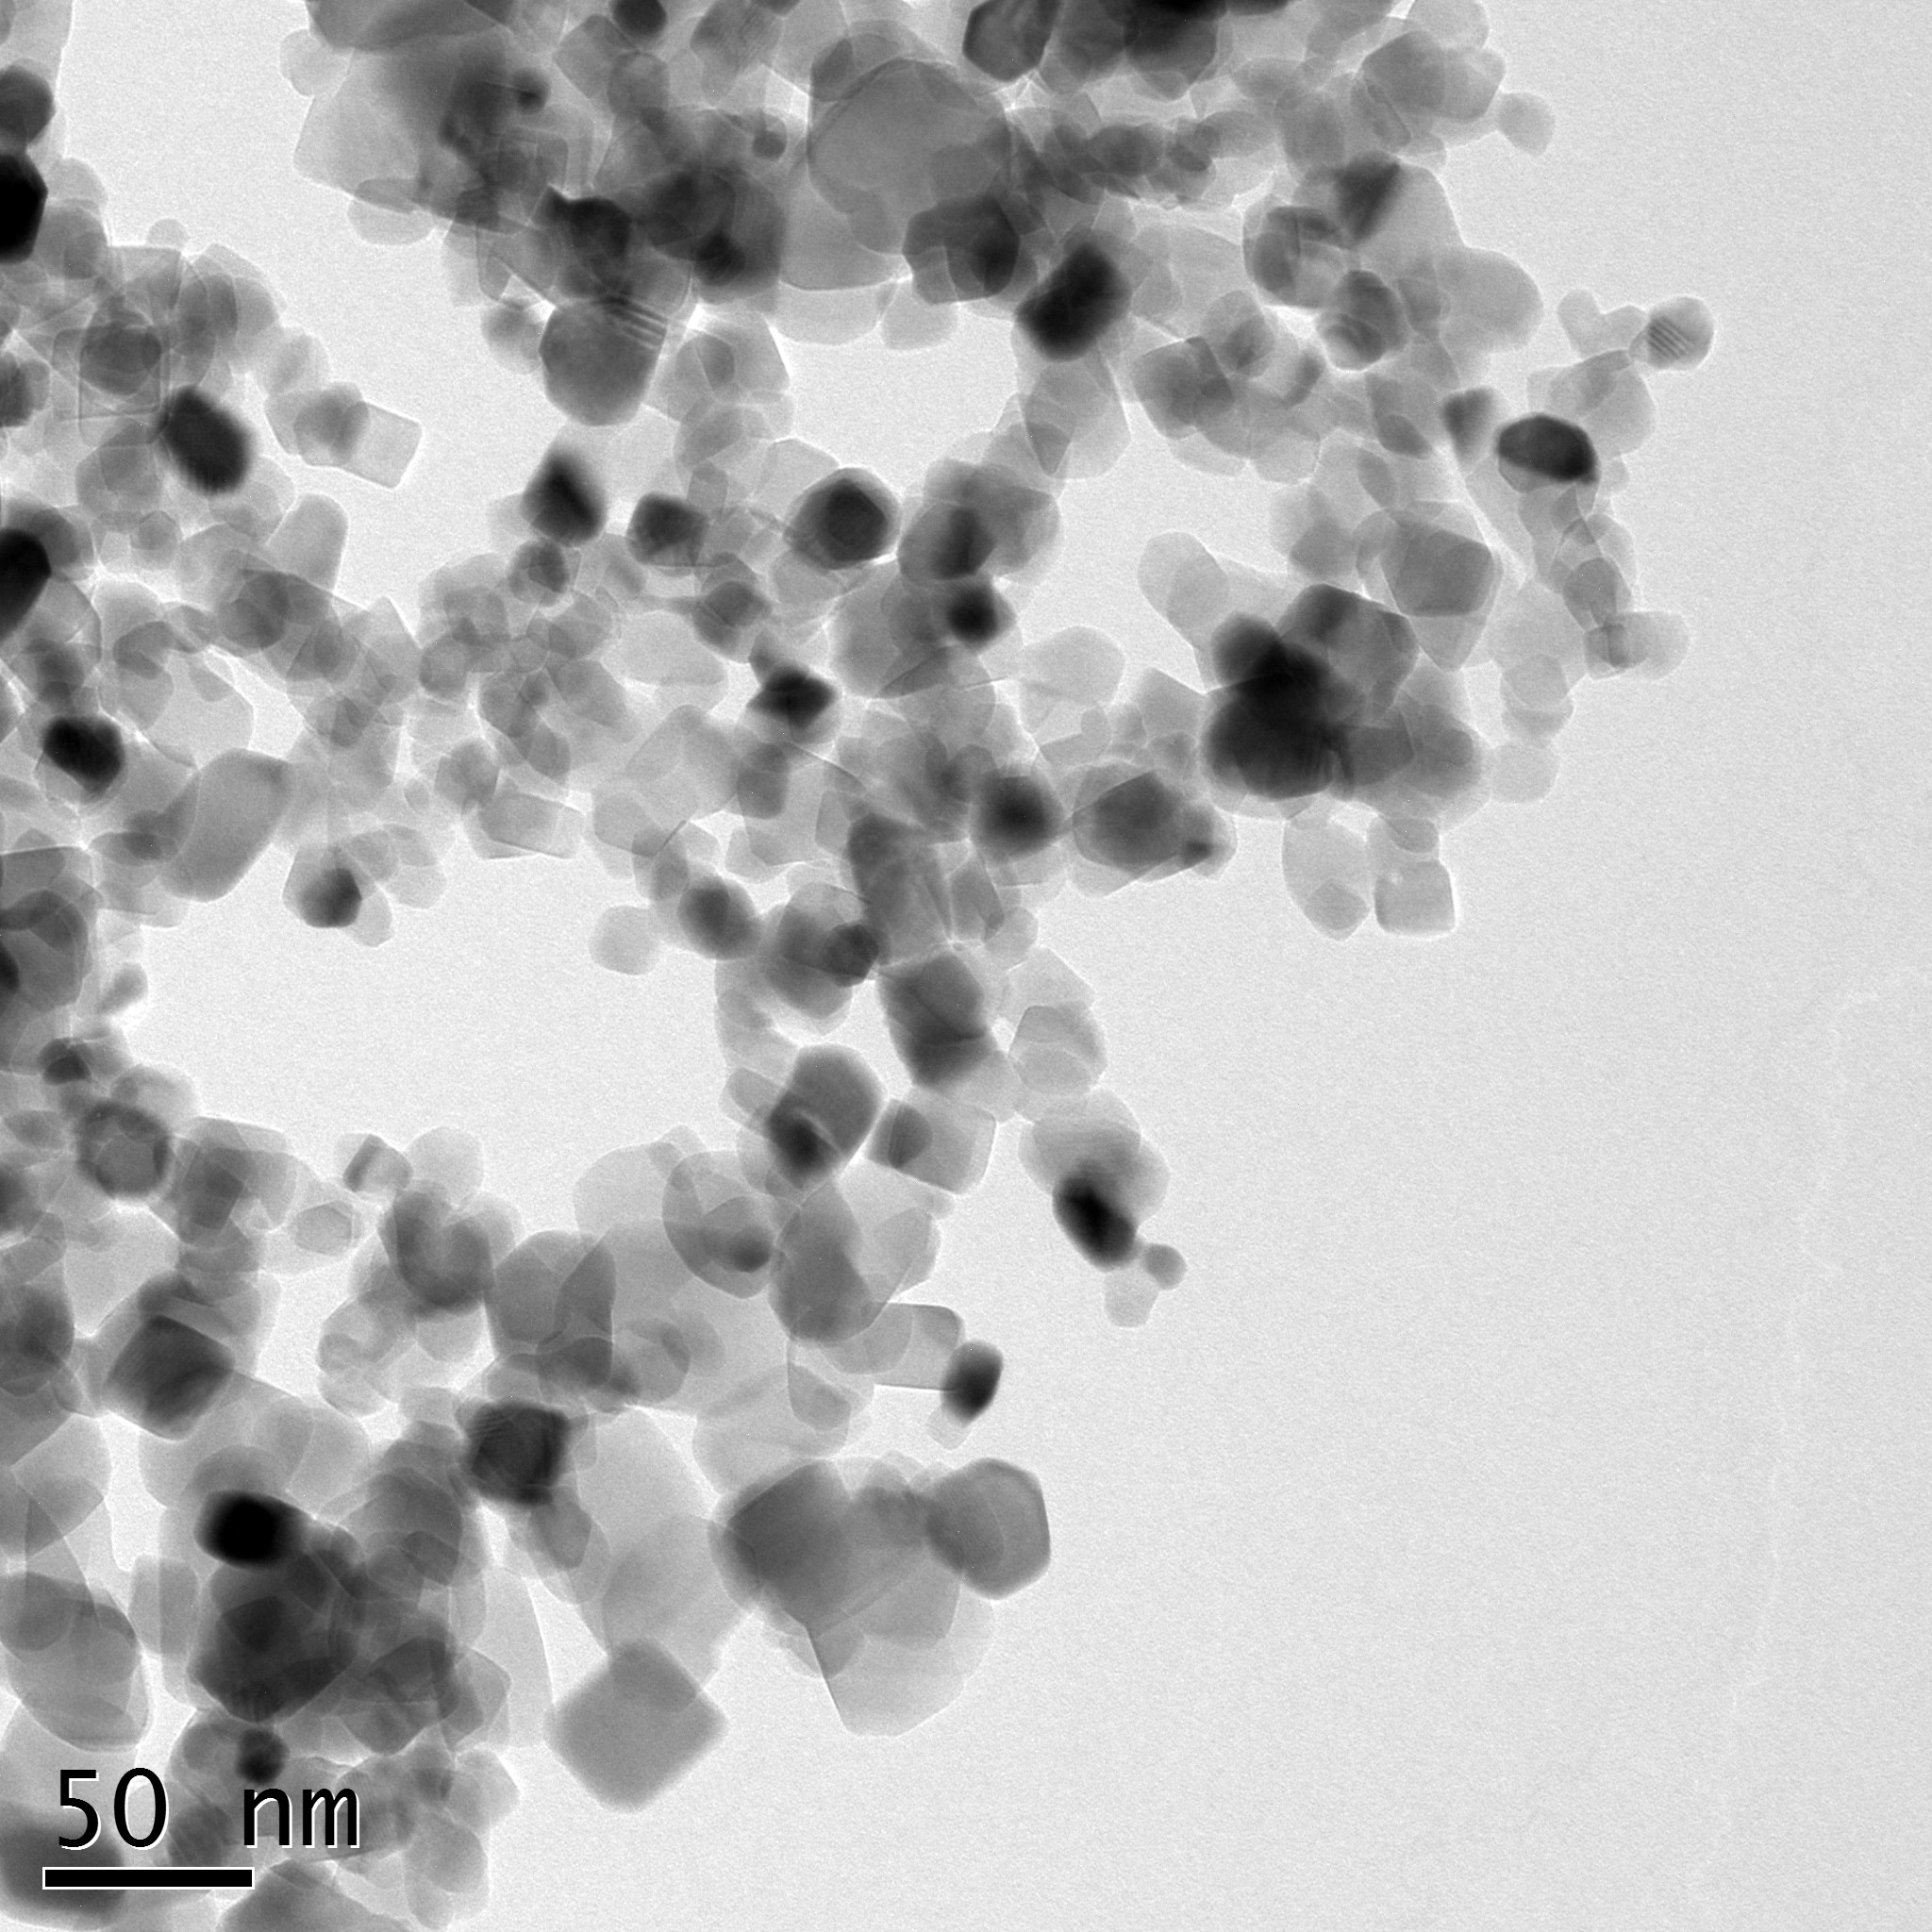 Typical TEM Image of ACS Material TiO2